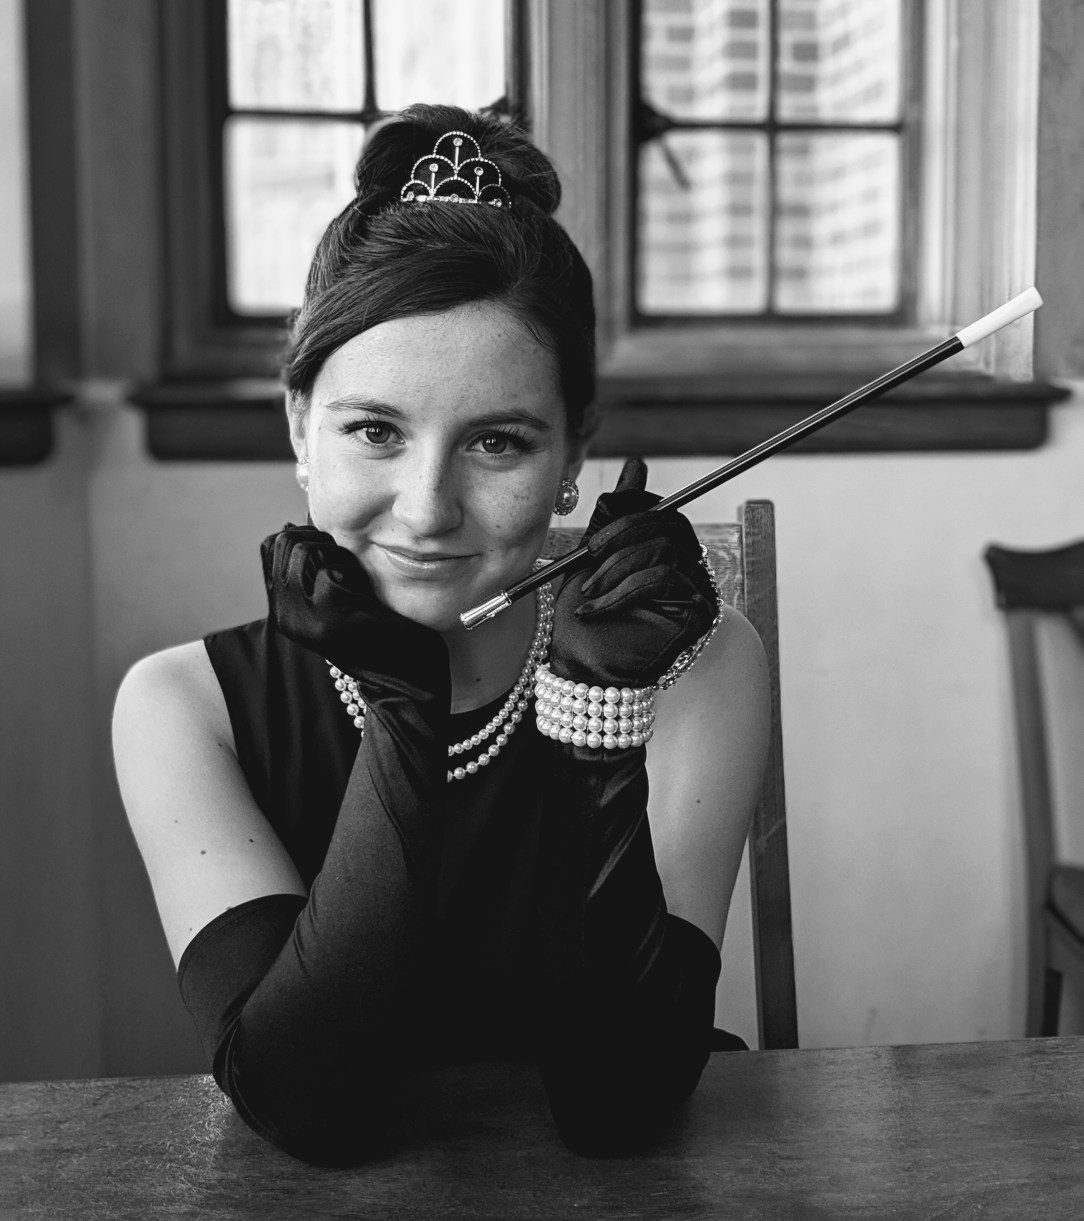 Wearing an Audrey Hepburn costume to recreate an iconic photo